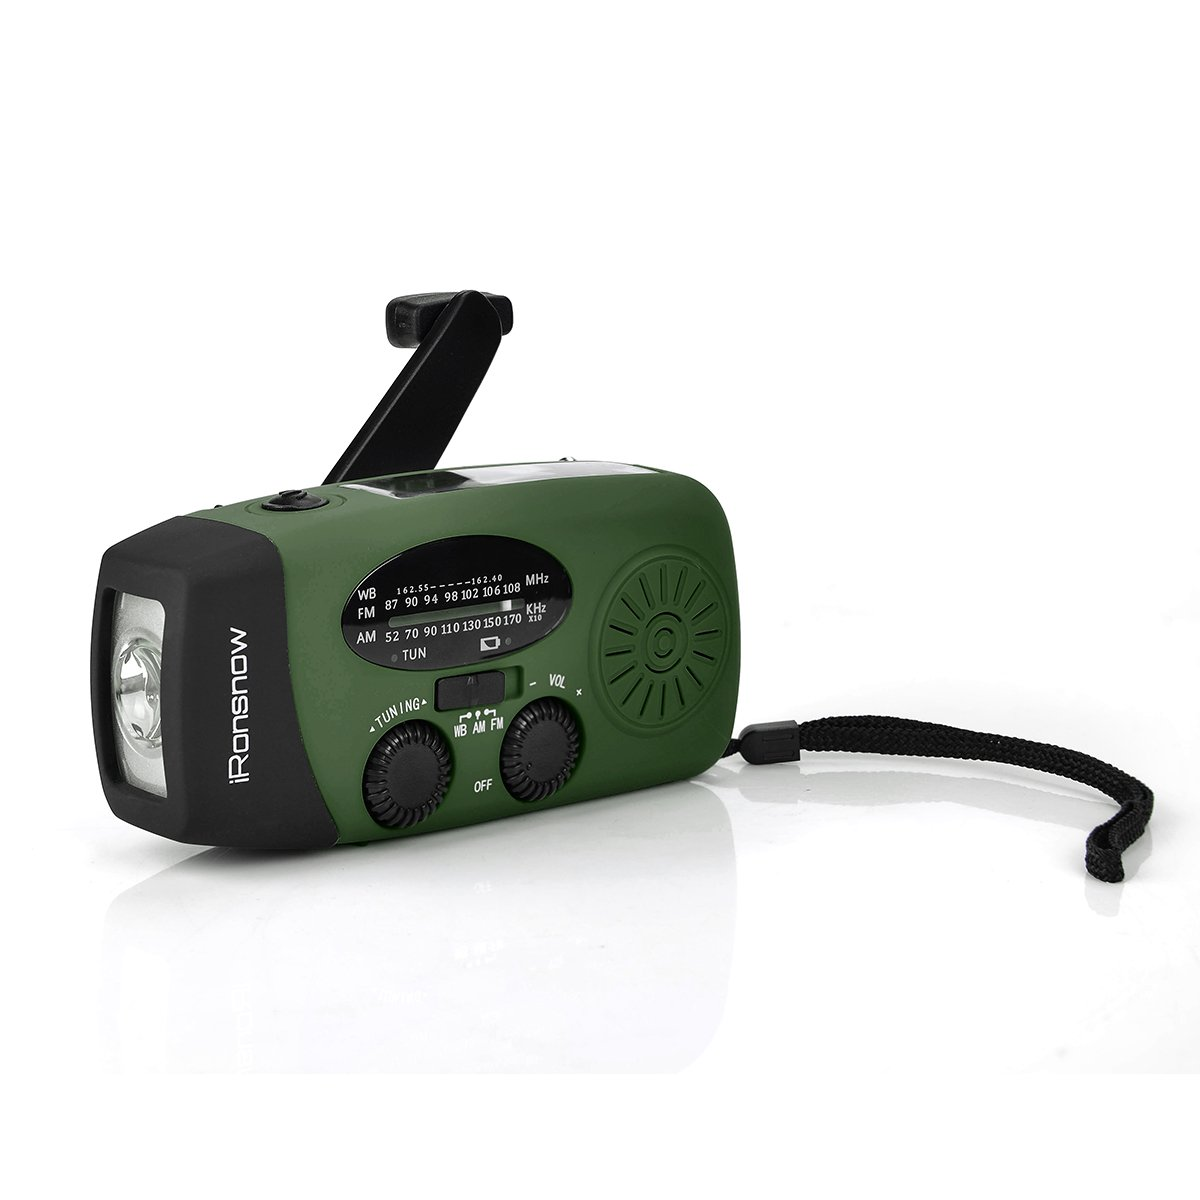 iRonsnow Solar Emergency NOAA Weather Radio Dynamo Hand Crank Self Powered AM FM WB Radios 1 LED Flashlight 1000mAh Smart Phone Charger Green Upgraded Version